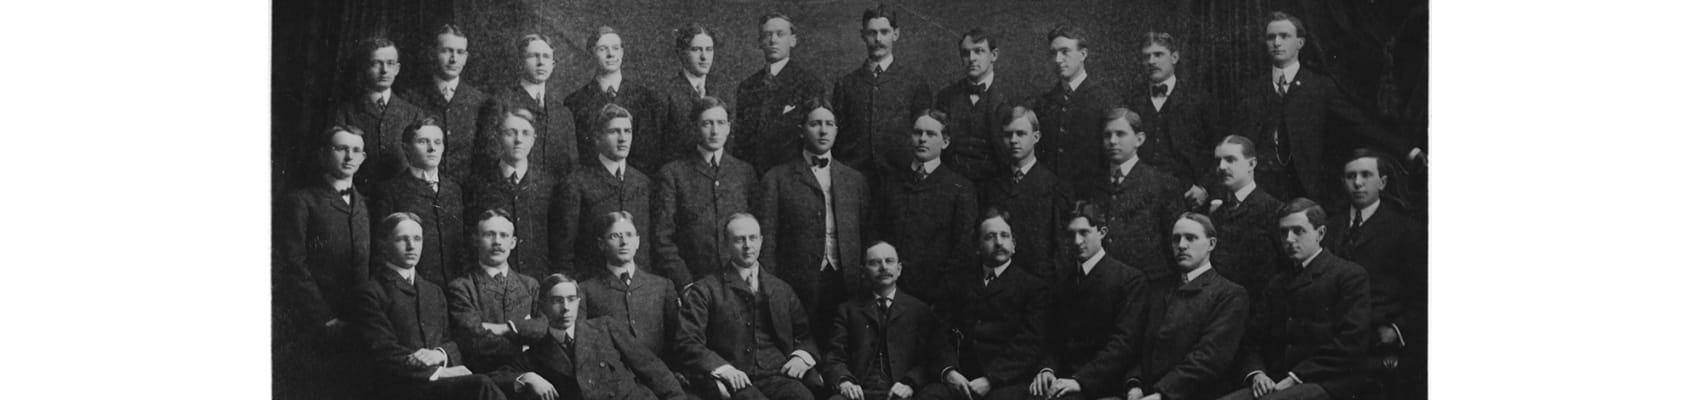 1903-engineers-buffalo-forge-company_h